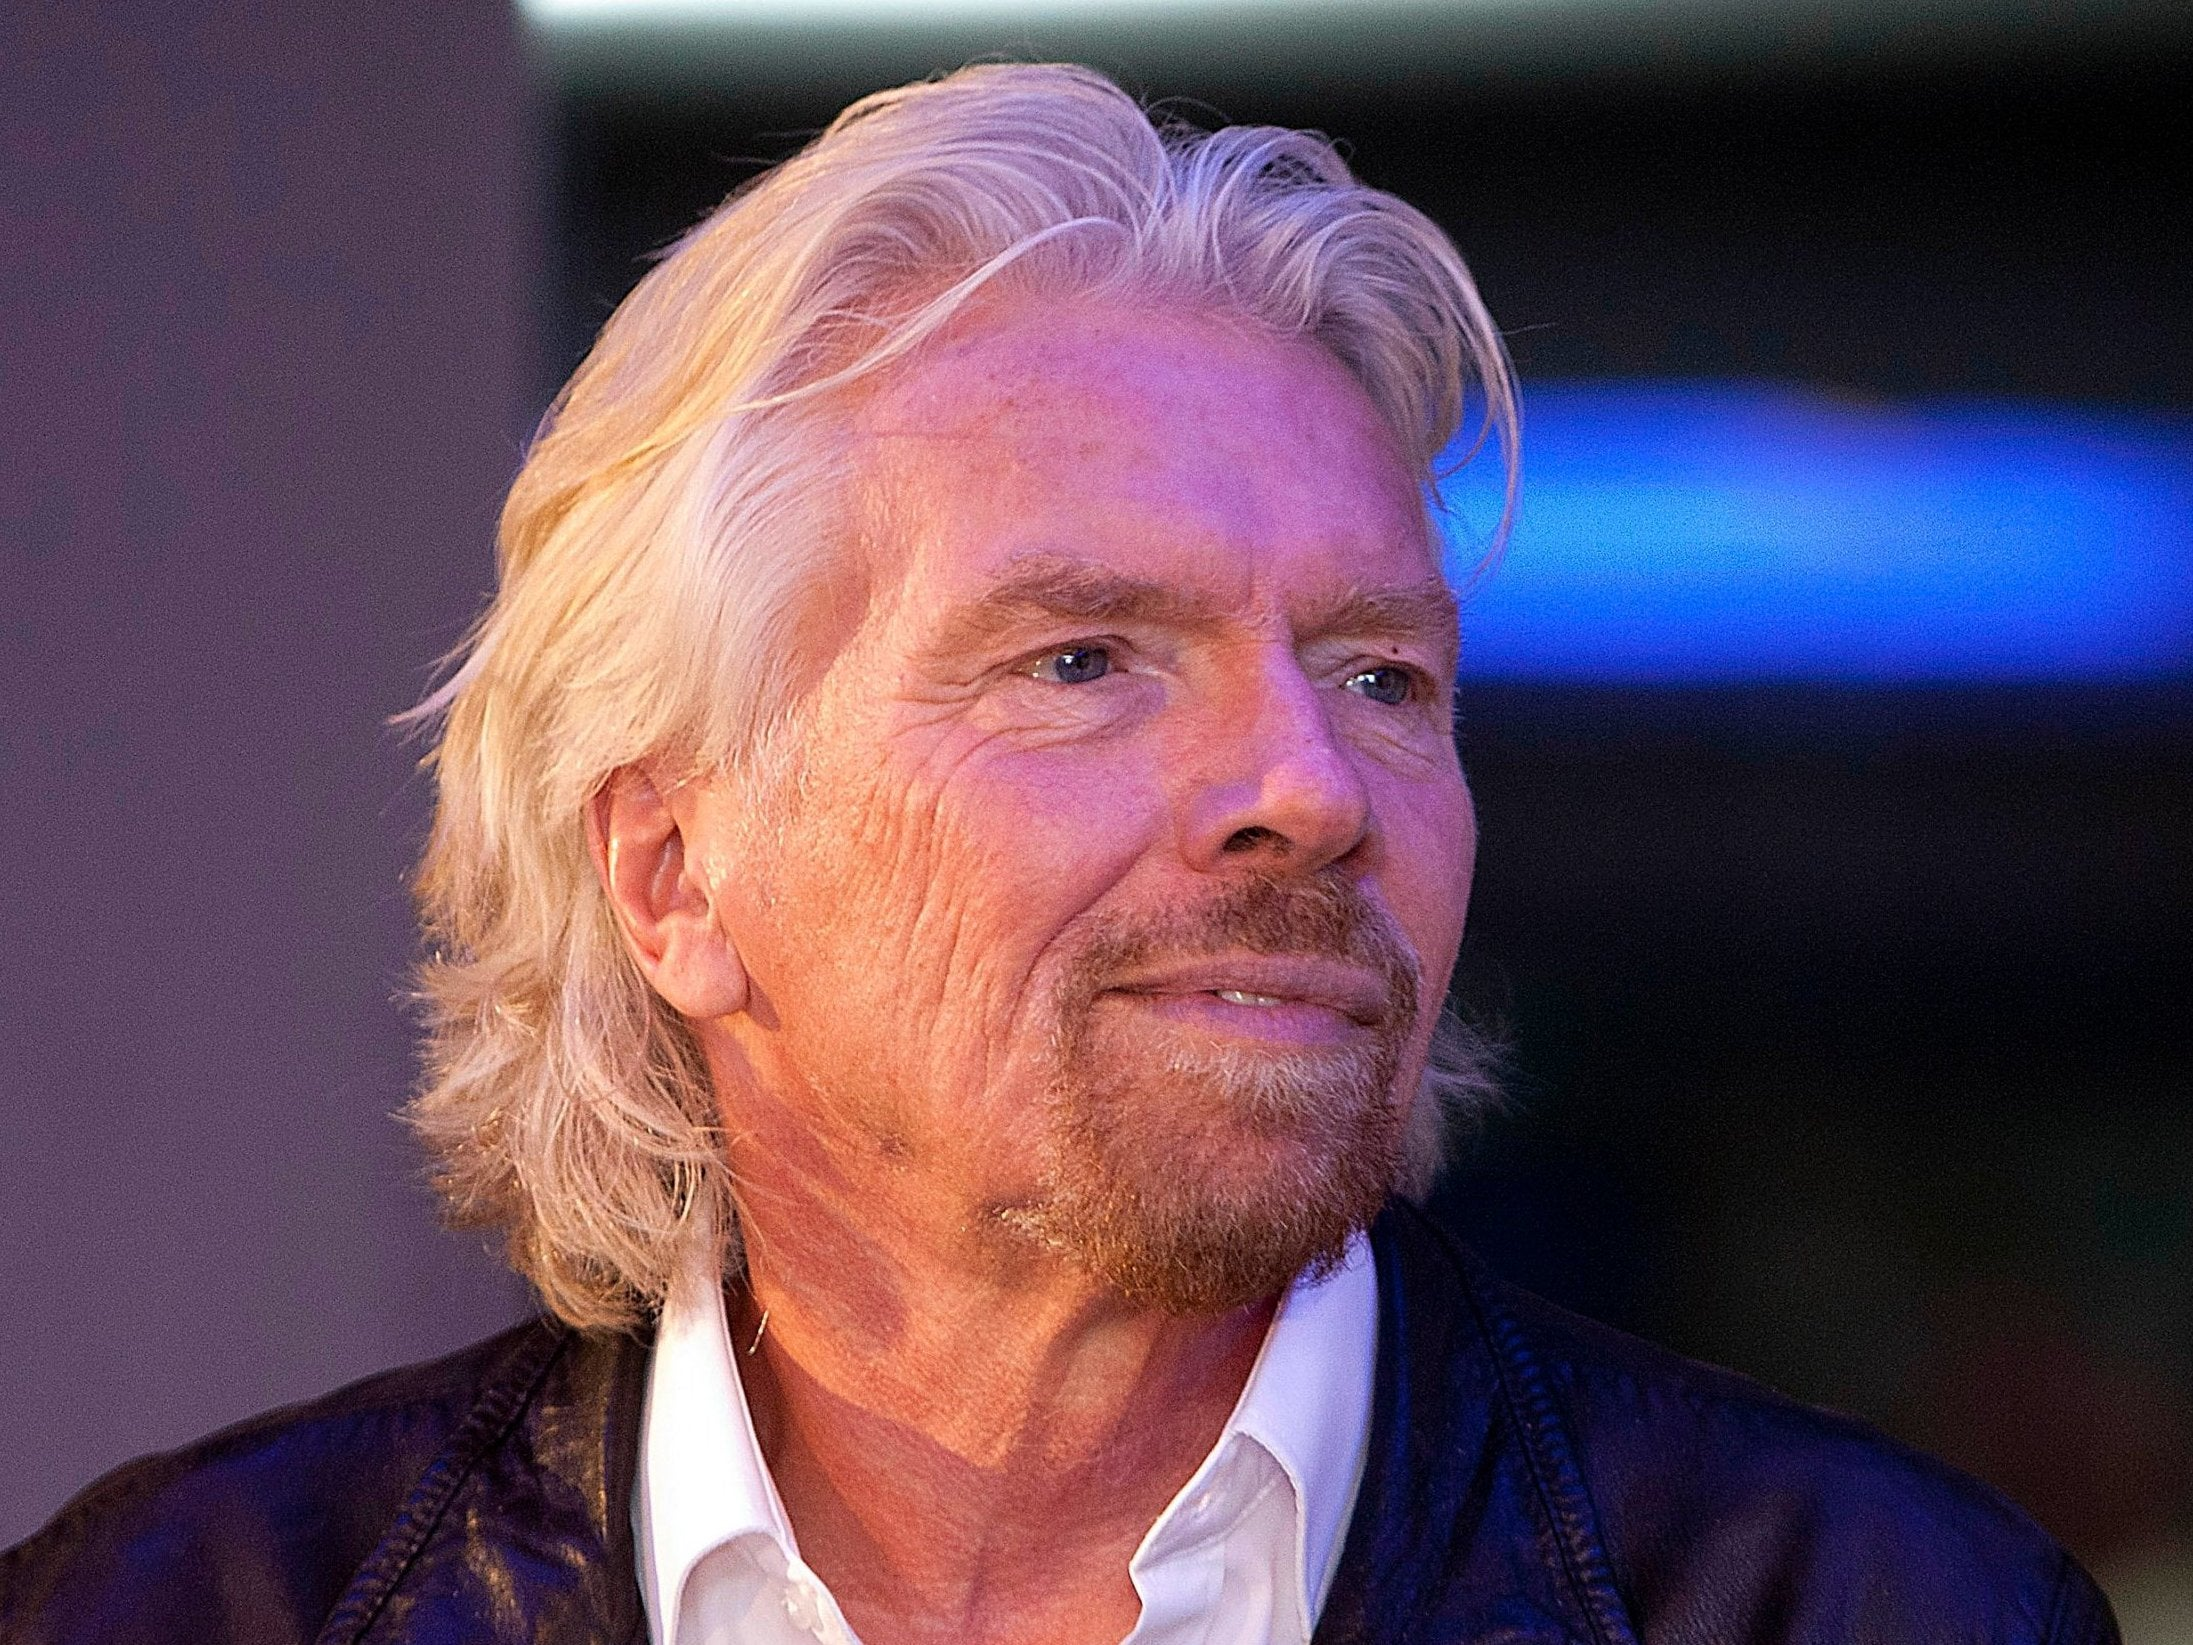 No-deal Brexit will leave UK 'near bankrupt' warns Sir Richard Branson